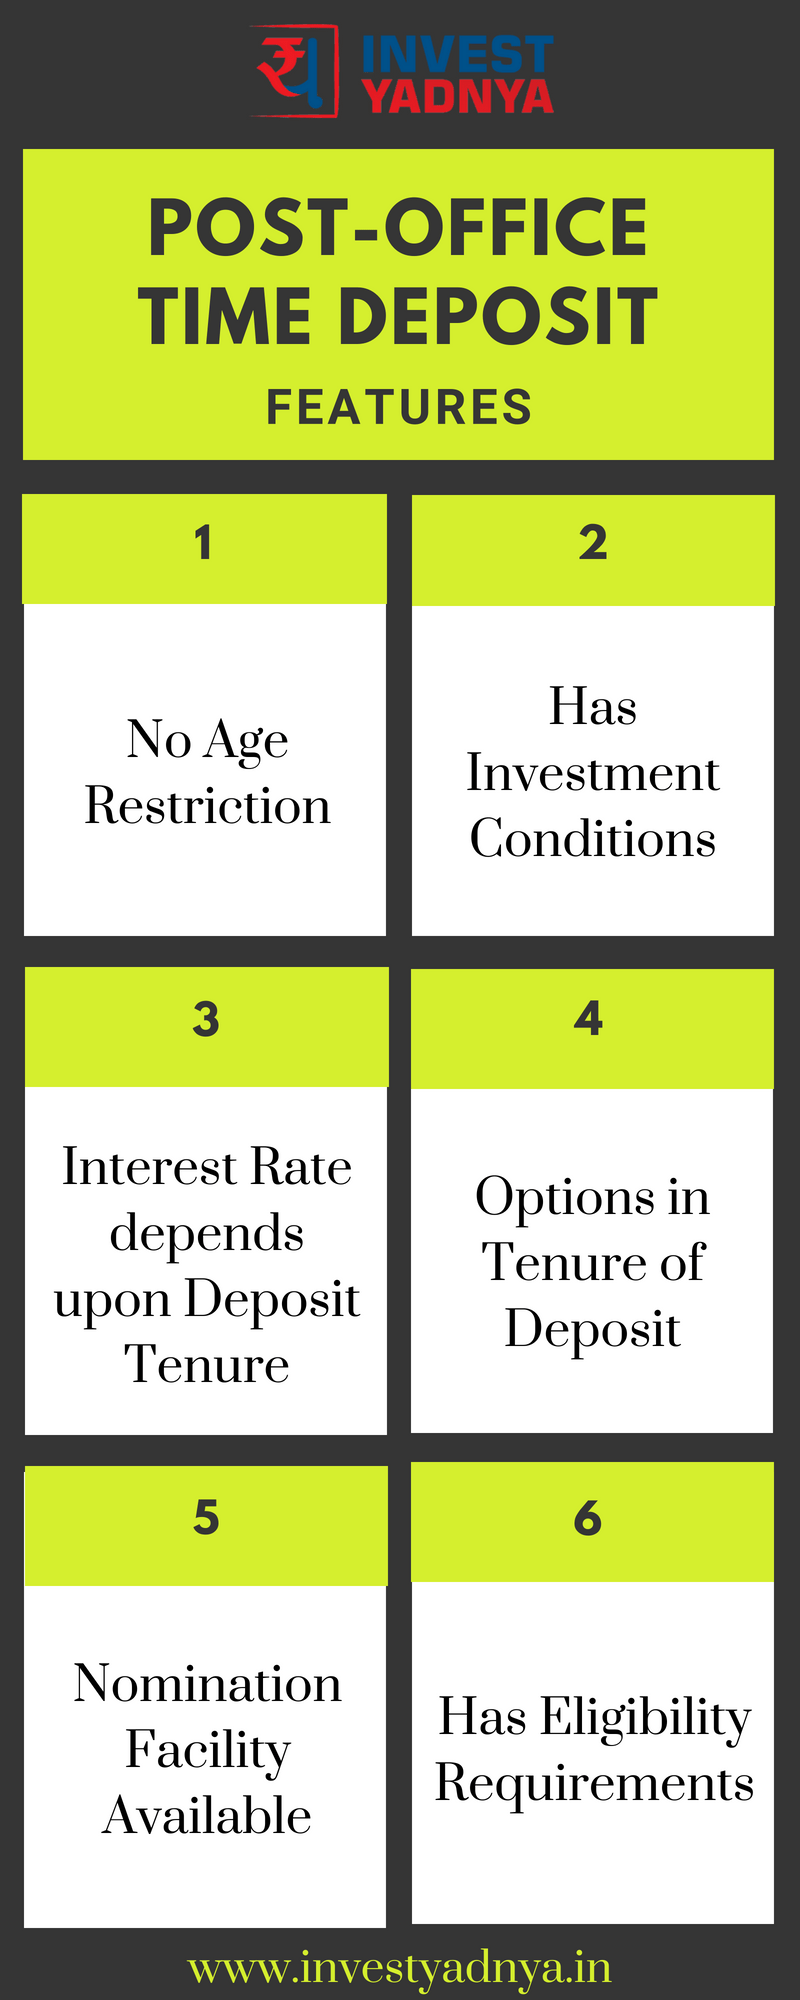 Features of Post-Office Time Deposit